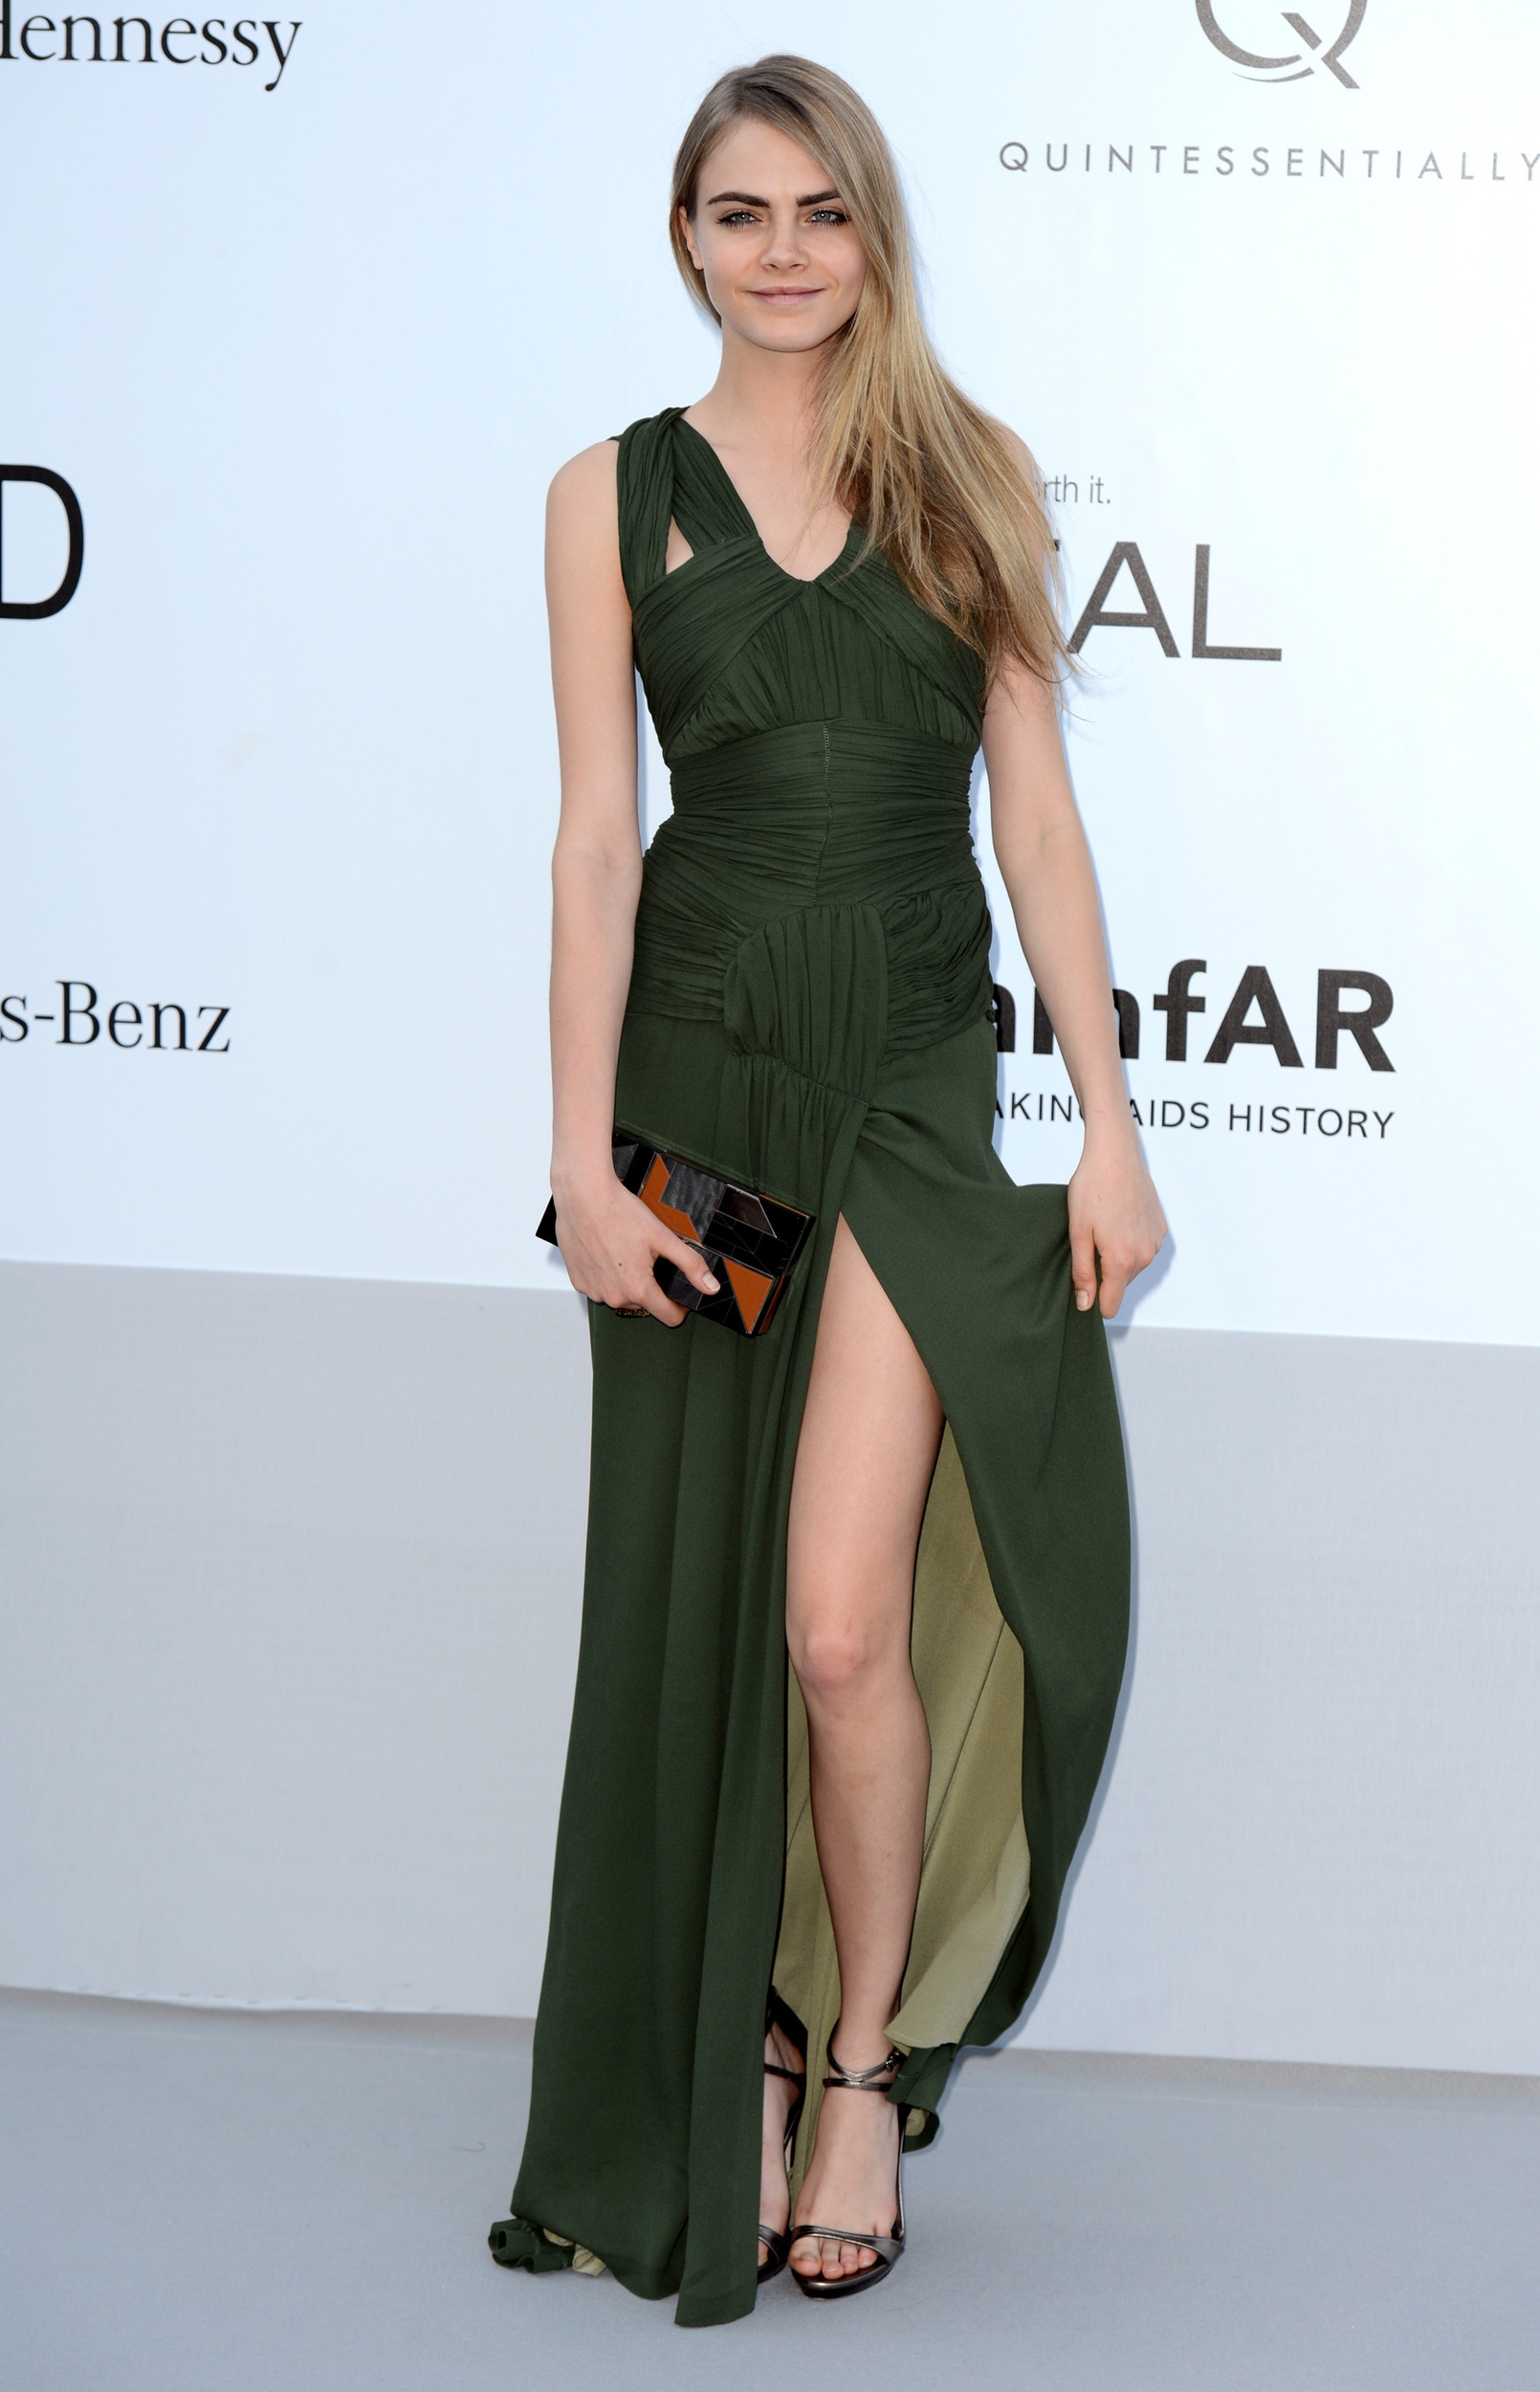 Cara Delevingne Steps Out In Wearing Green Wig After